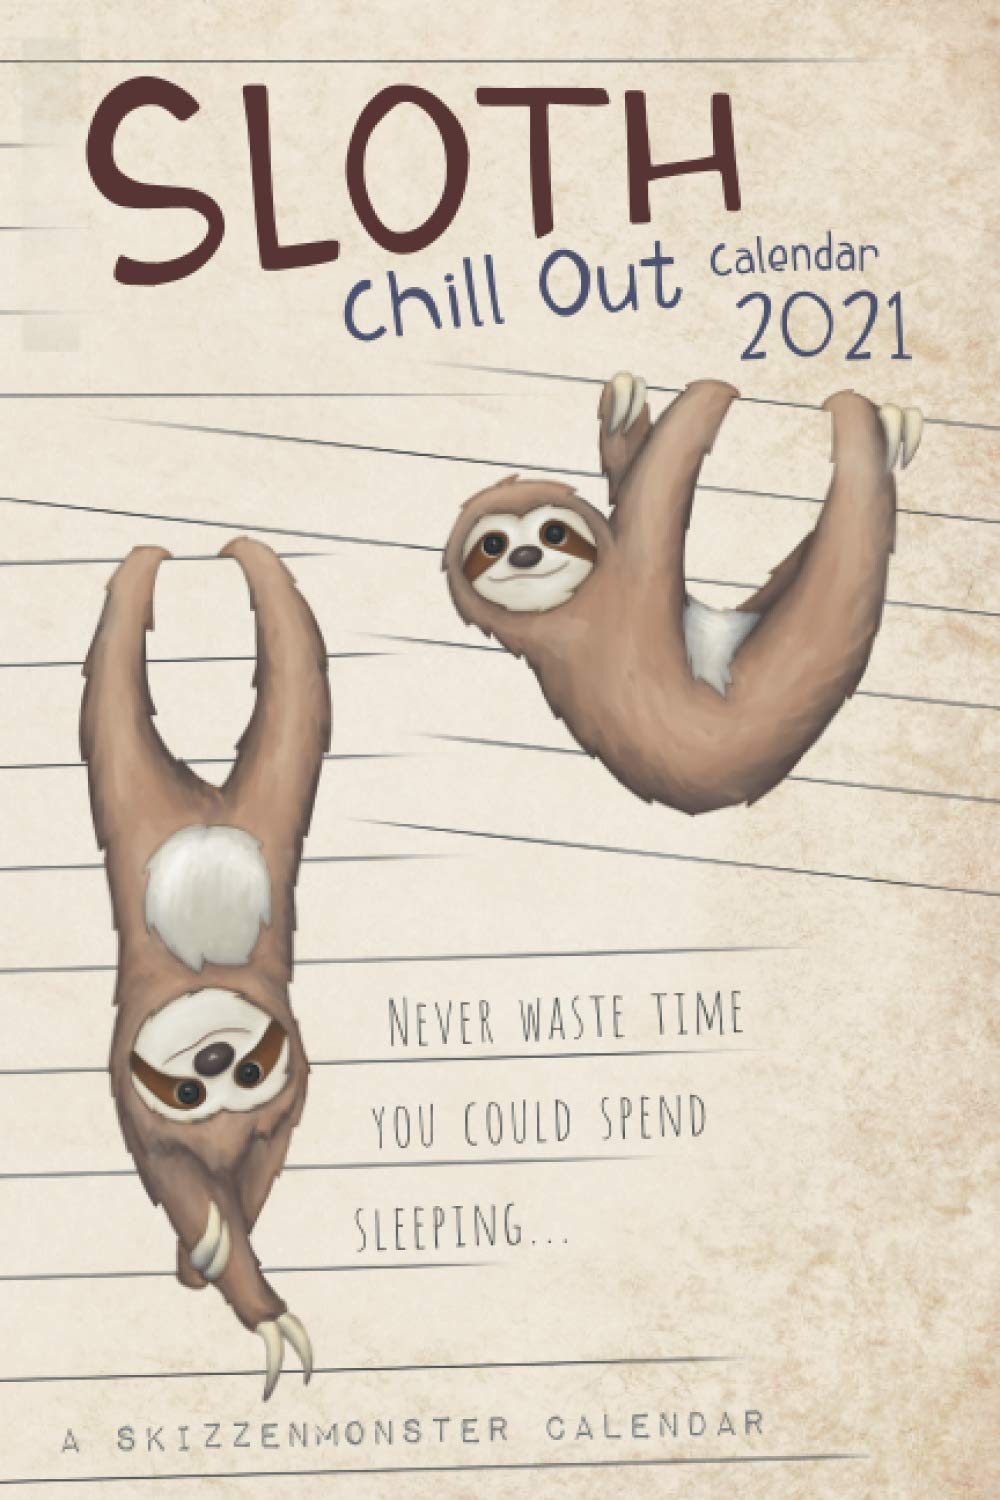 Un Calendar 2021 Chill Out Sloth Calendar 2021: THE weekly planner for true sloth